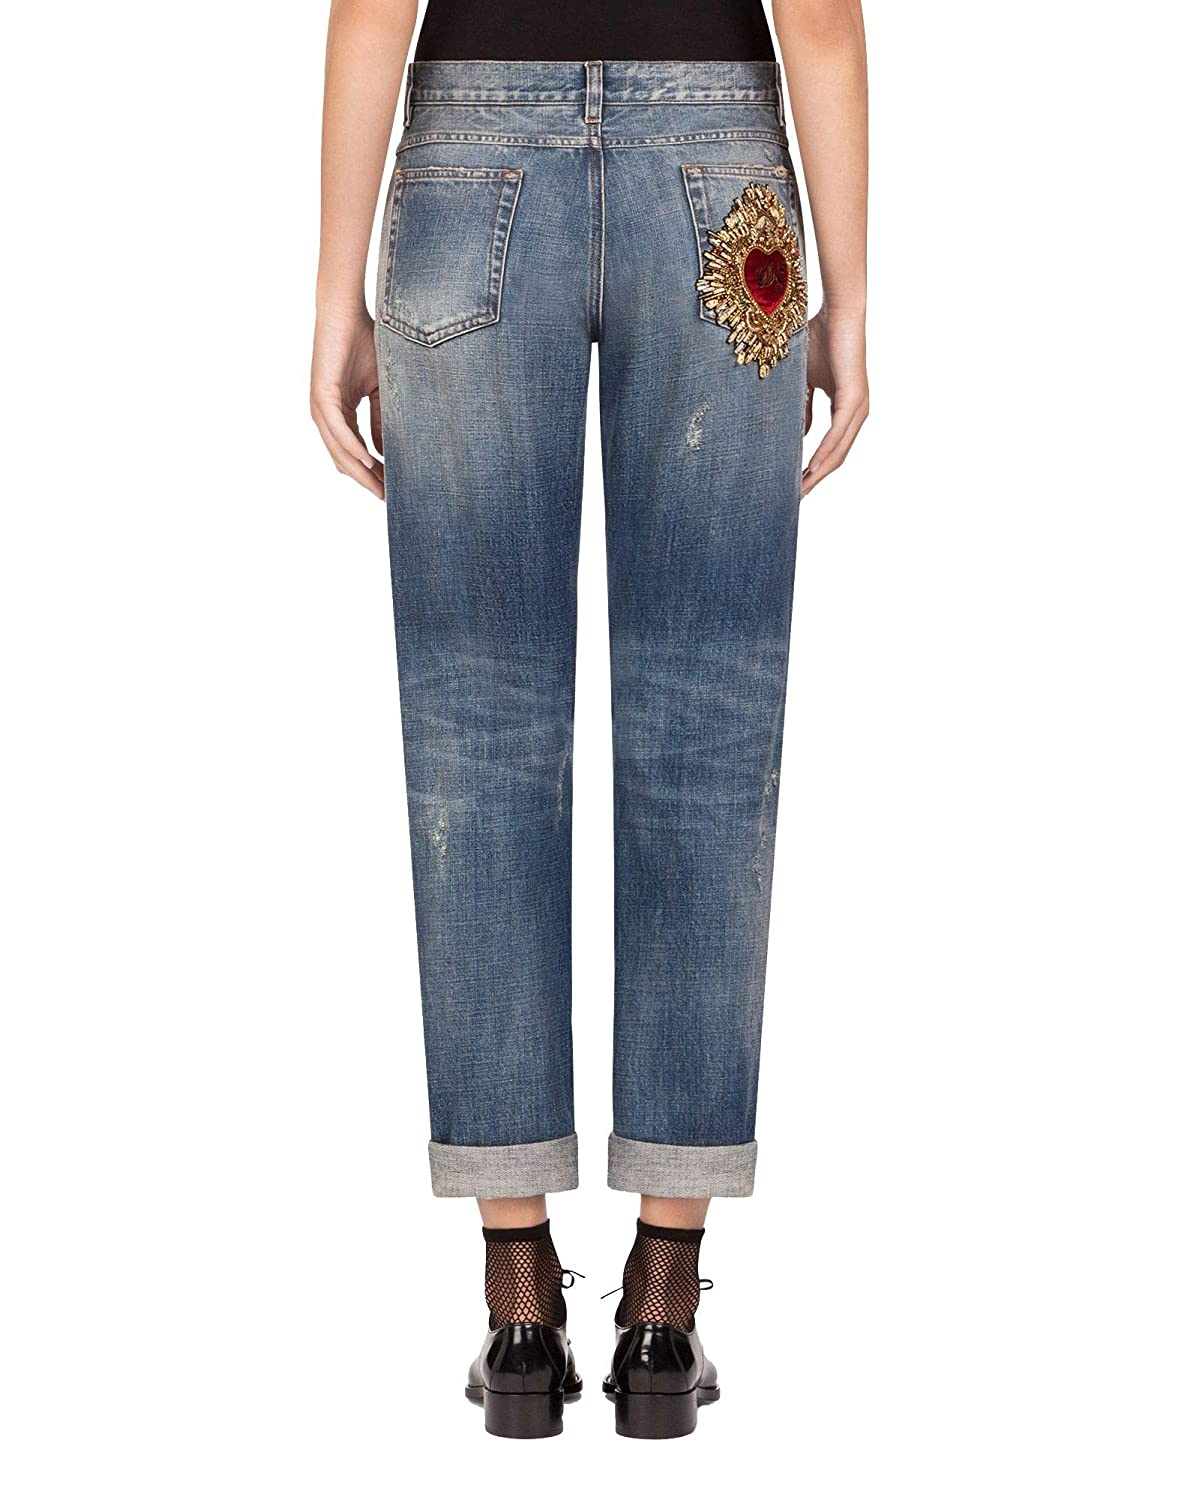 the latest 7eeb6 242ba Dolce e Gabbana Women's FTBI2ZG8X99S9001 Blue Cotton Jeans ...